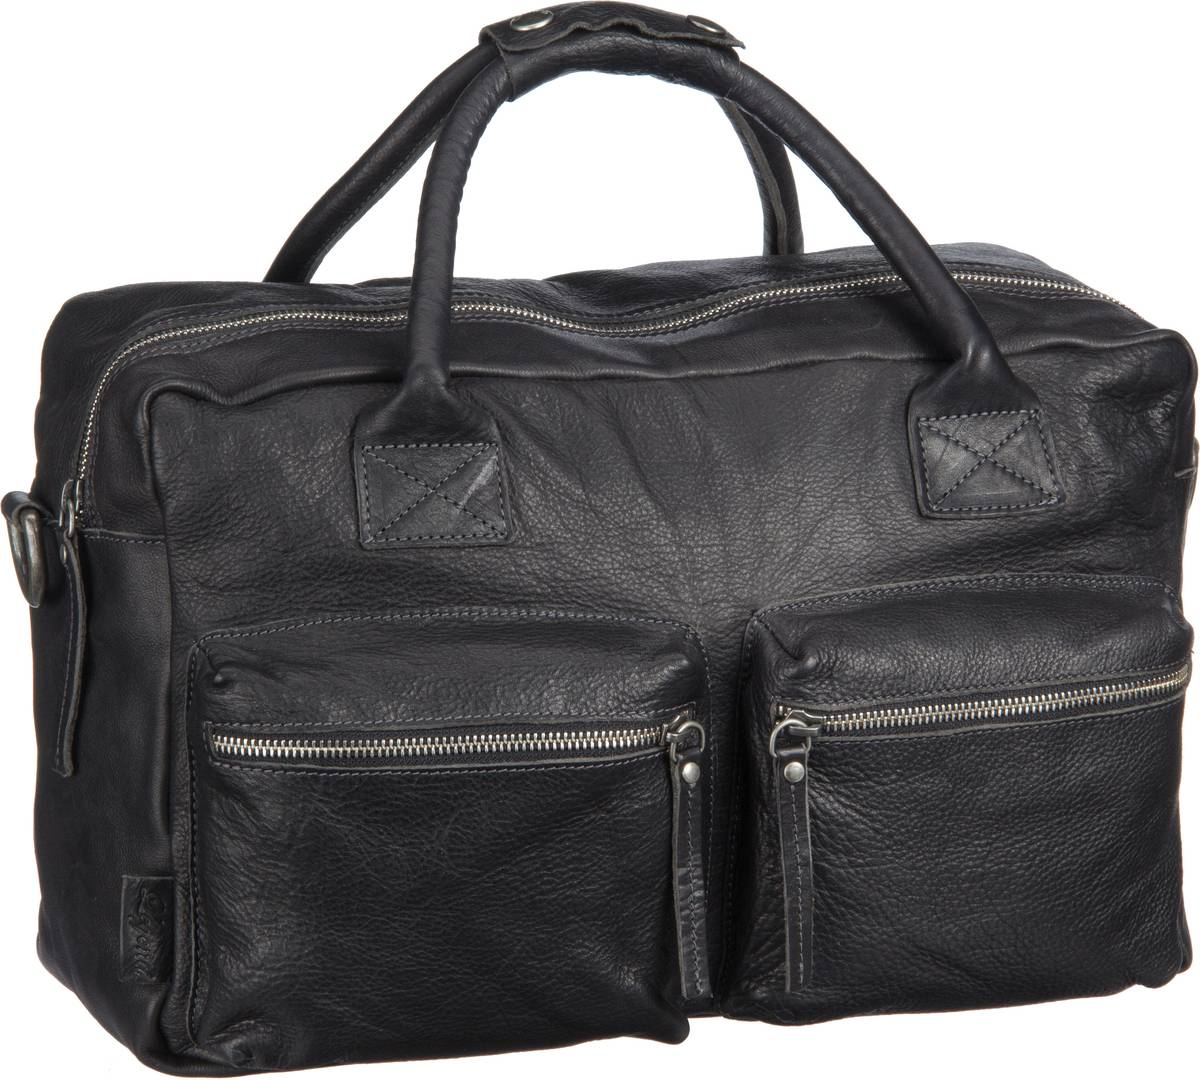 Legend Alabama Black - Handtasche